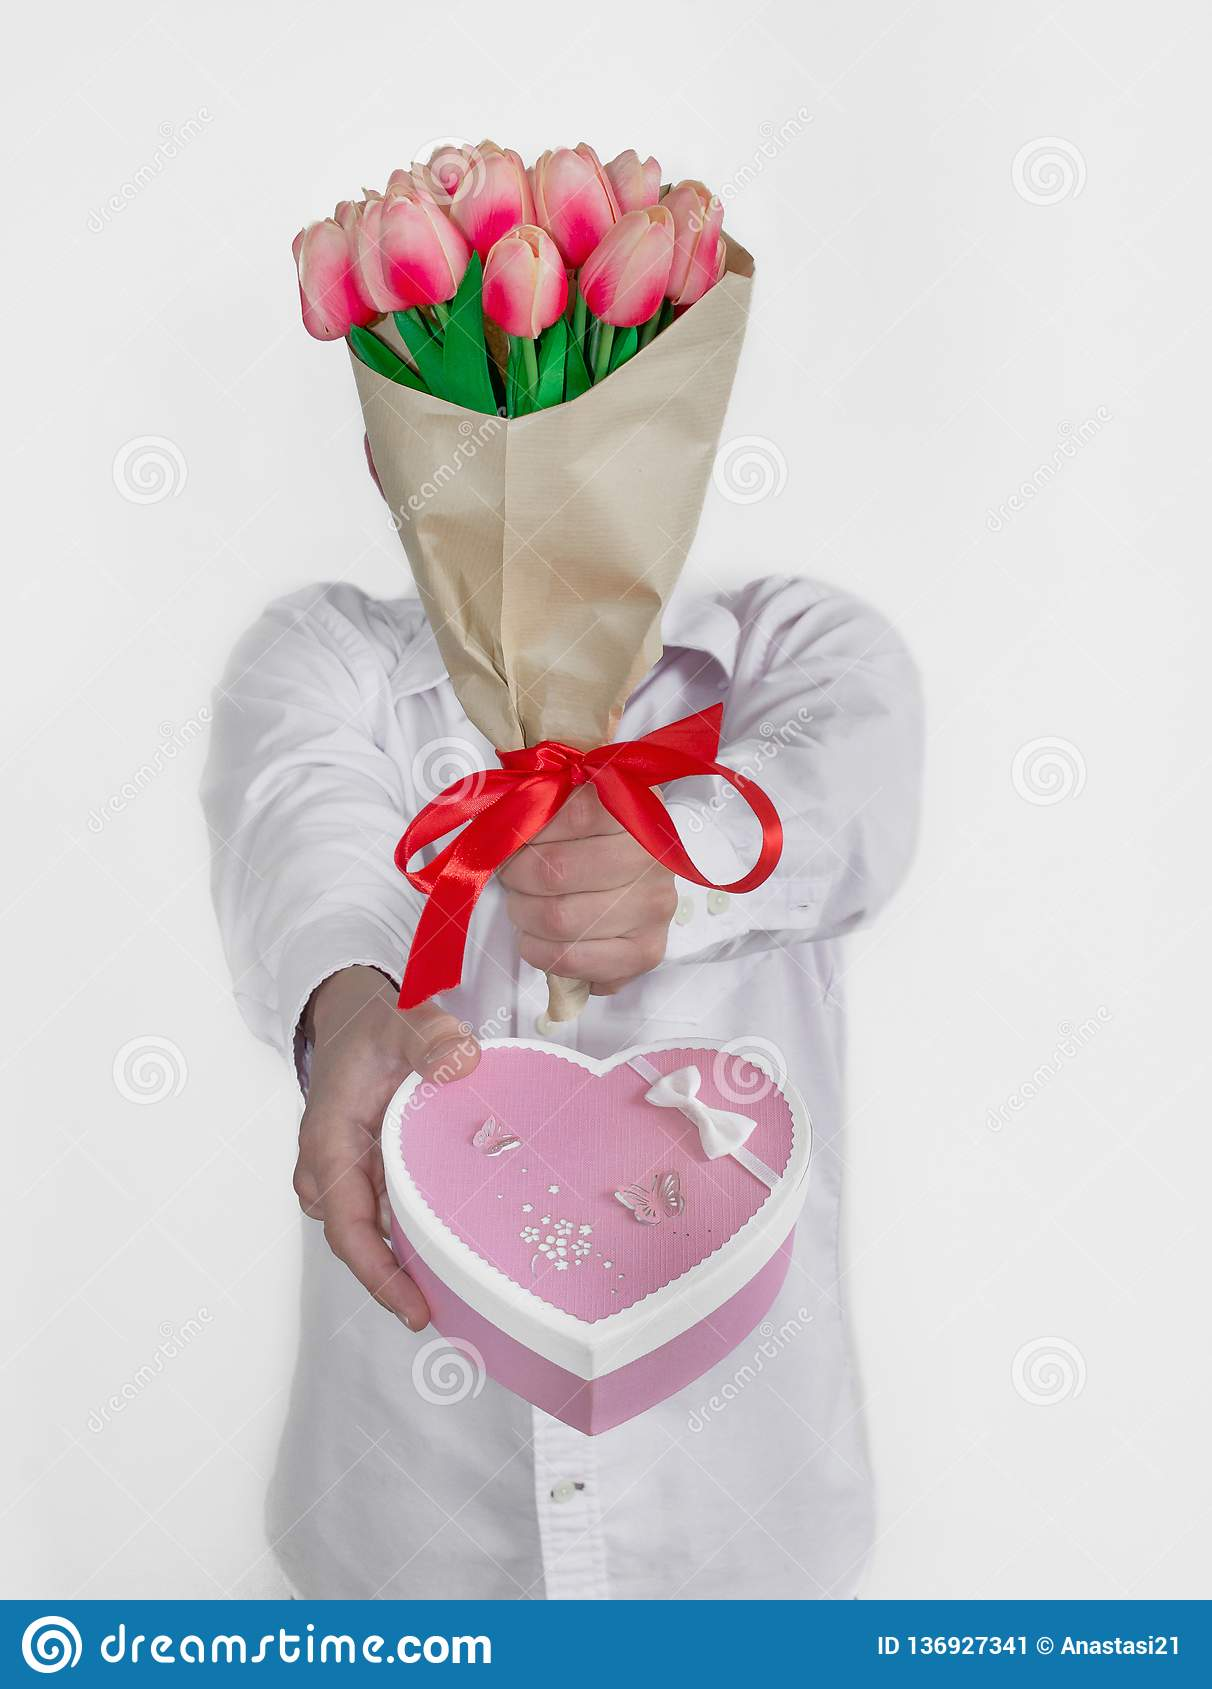 A young man in a white shirt and jeans holds a bouquet of tulips near his face and holds out a heart-shaped gift box